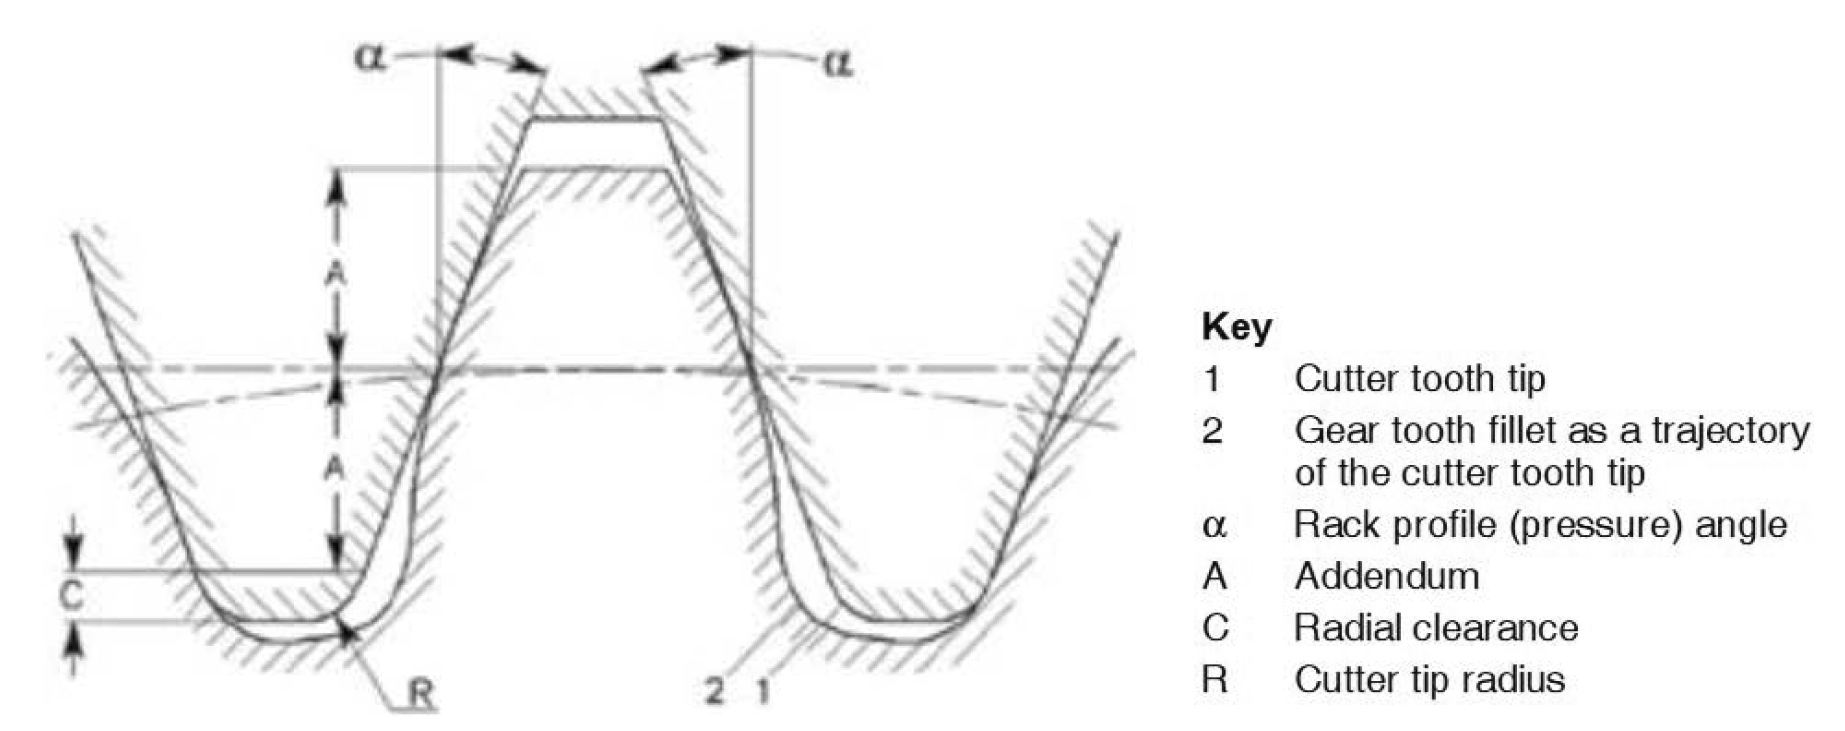 Effects of Asymmetric Cutter Tip Radii on Gear Tooth Root Bending